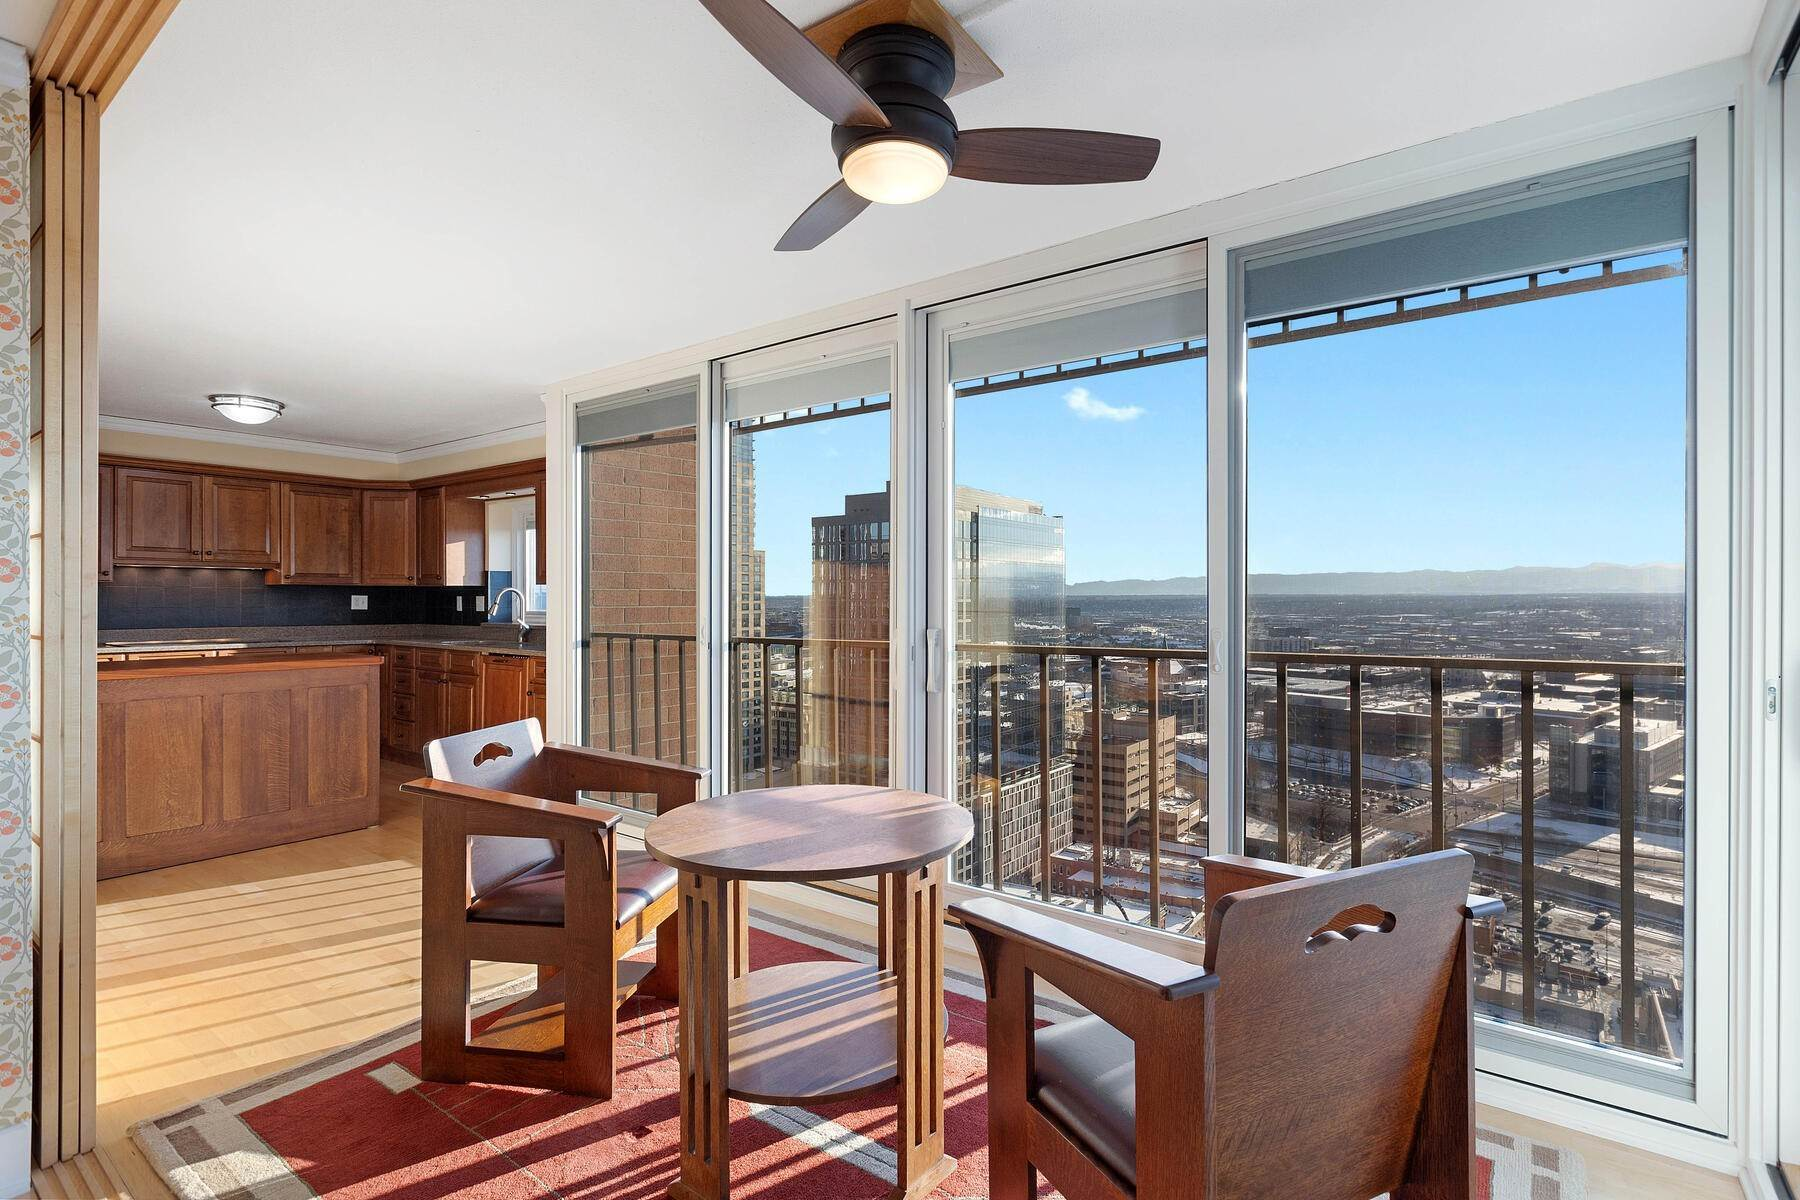 7. Condominiums at IMPRESSIVE FOREVER VIEWS HIGH ATOP THE CITY 1551 Larimer Street Unit #2701C Denver, Colorado 80202 United States